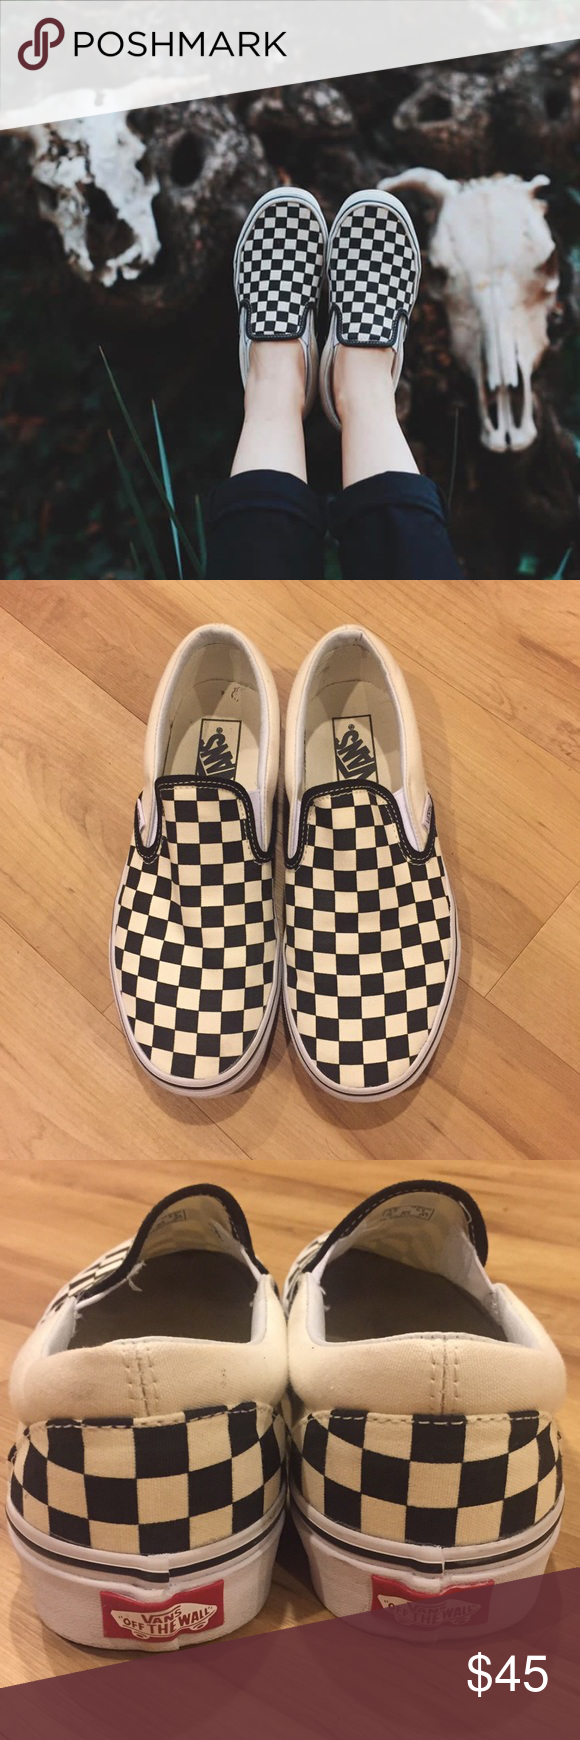 1531130aca90 Vans Classic Slip On Checkerboard Classic Slip On in Black and White  Checkerboard. Worn twice. Mens 7 Womens 8.5  ) Cheaper on Depop ( kayahhe)! Vans  Shoes ...